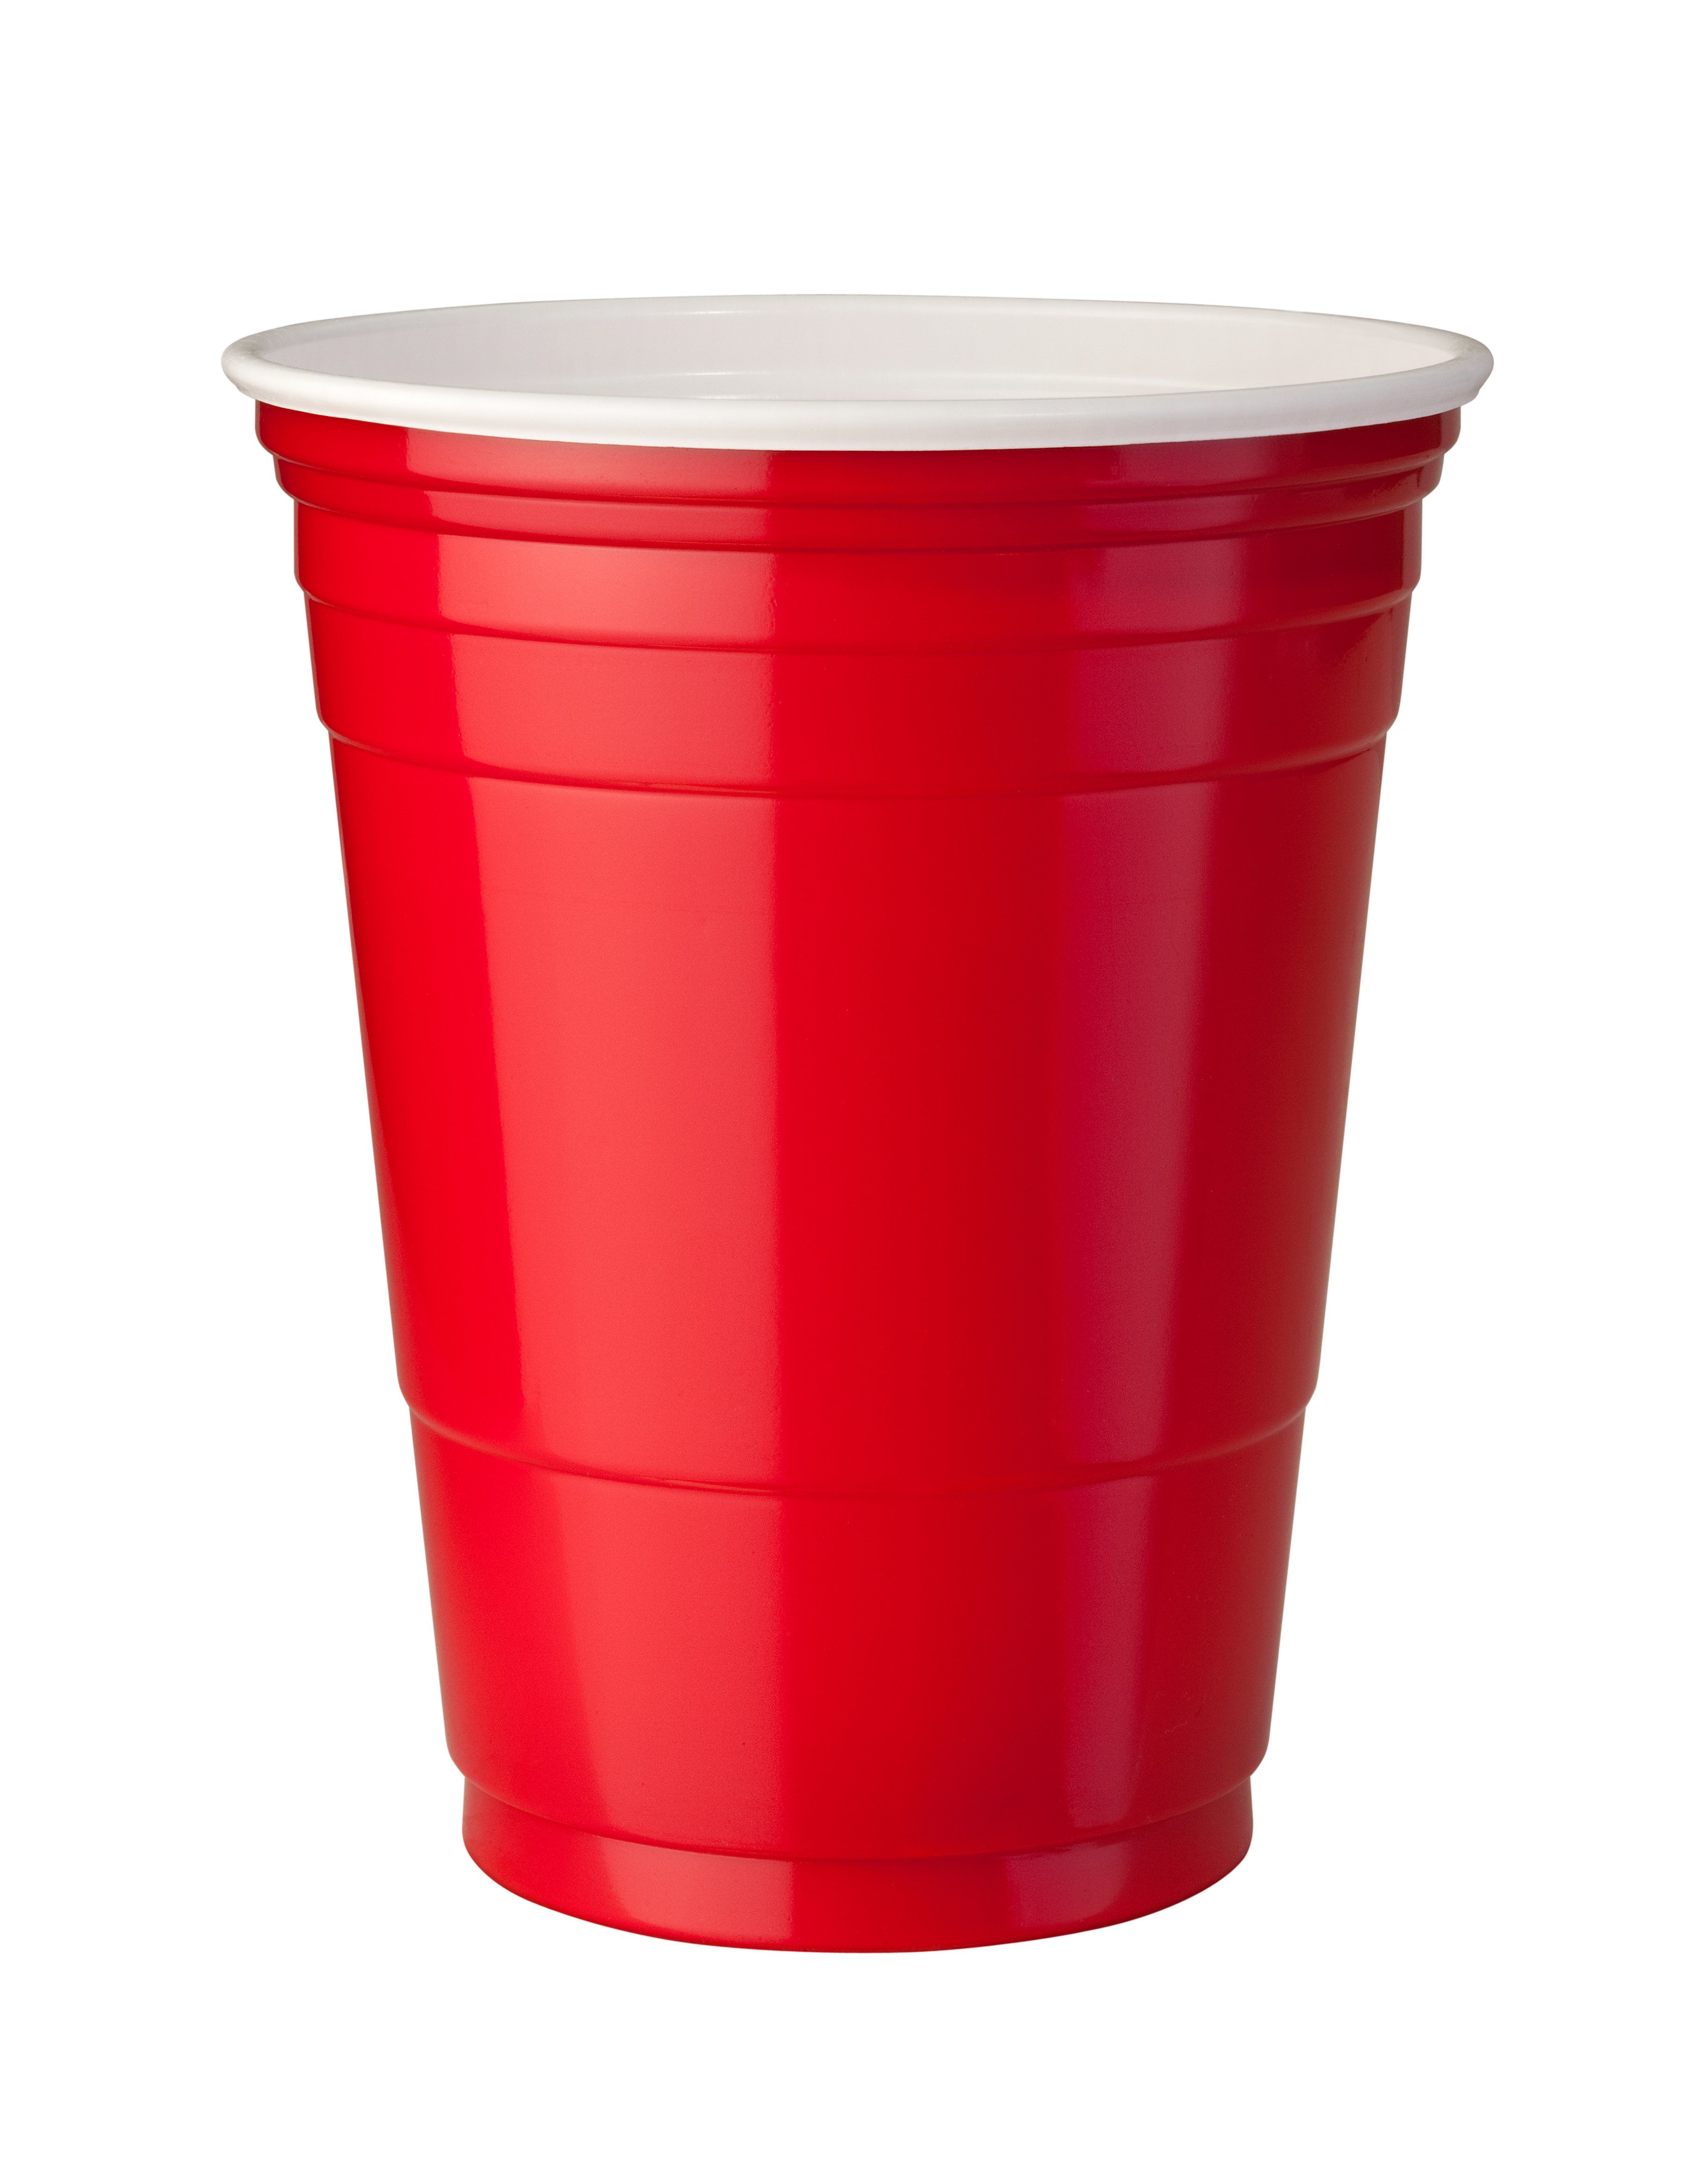 The famous red cup.